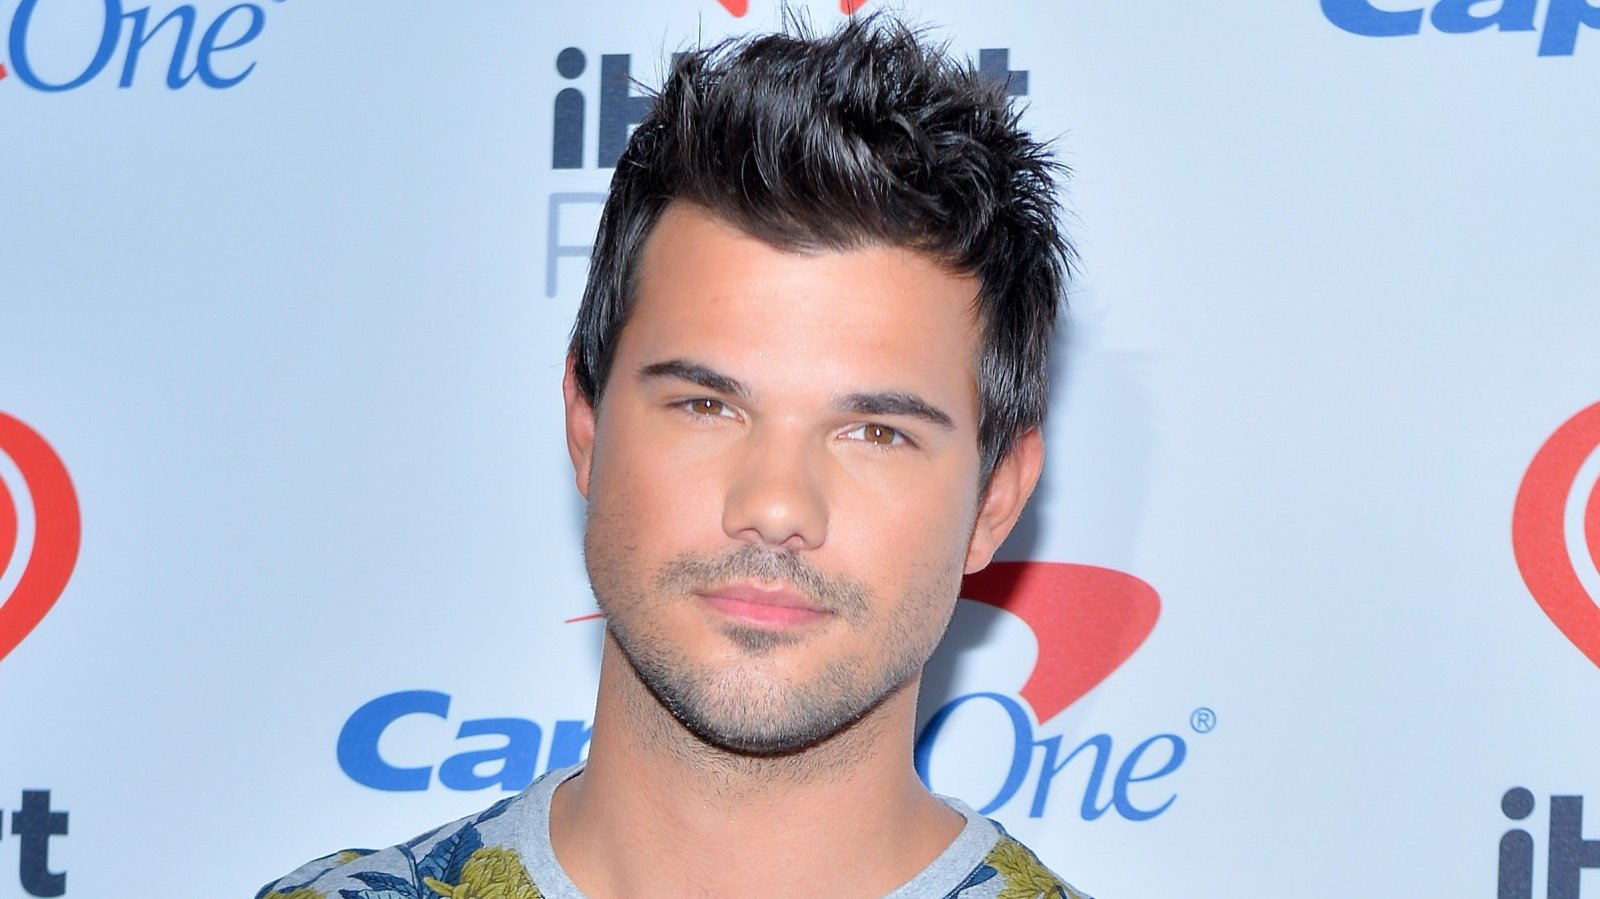 Inside Taylor Lautner's Life Today